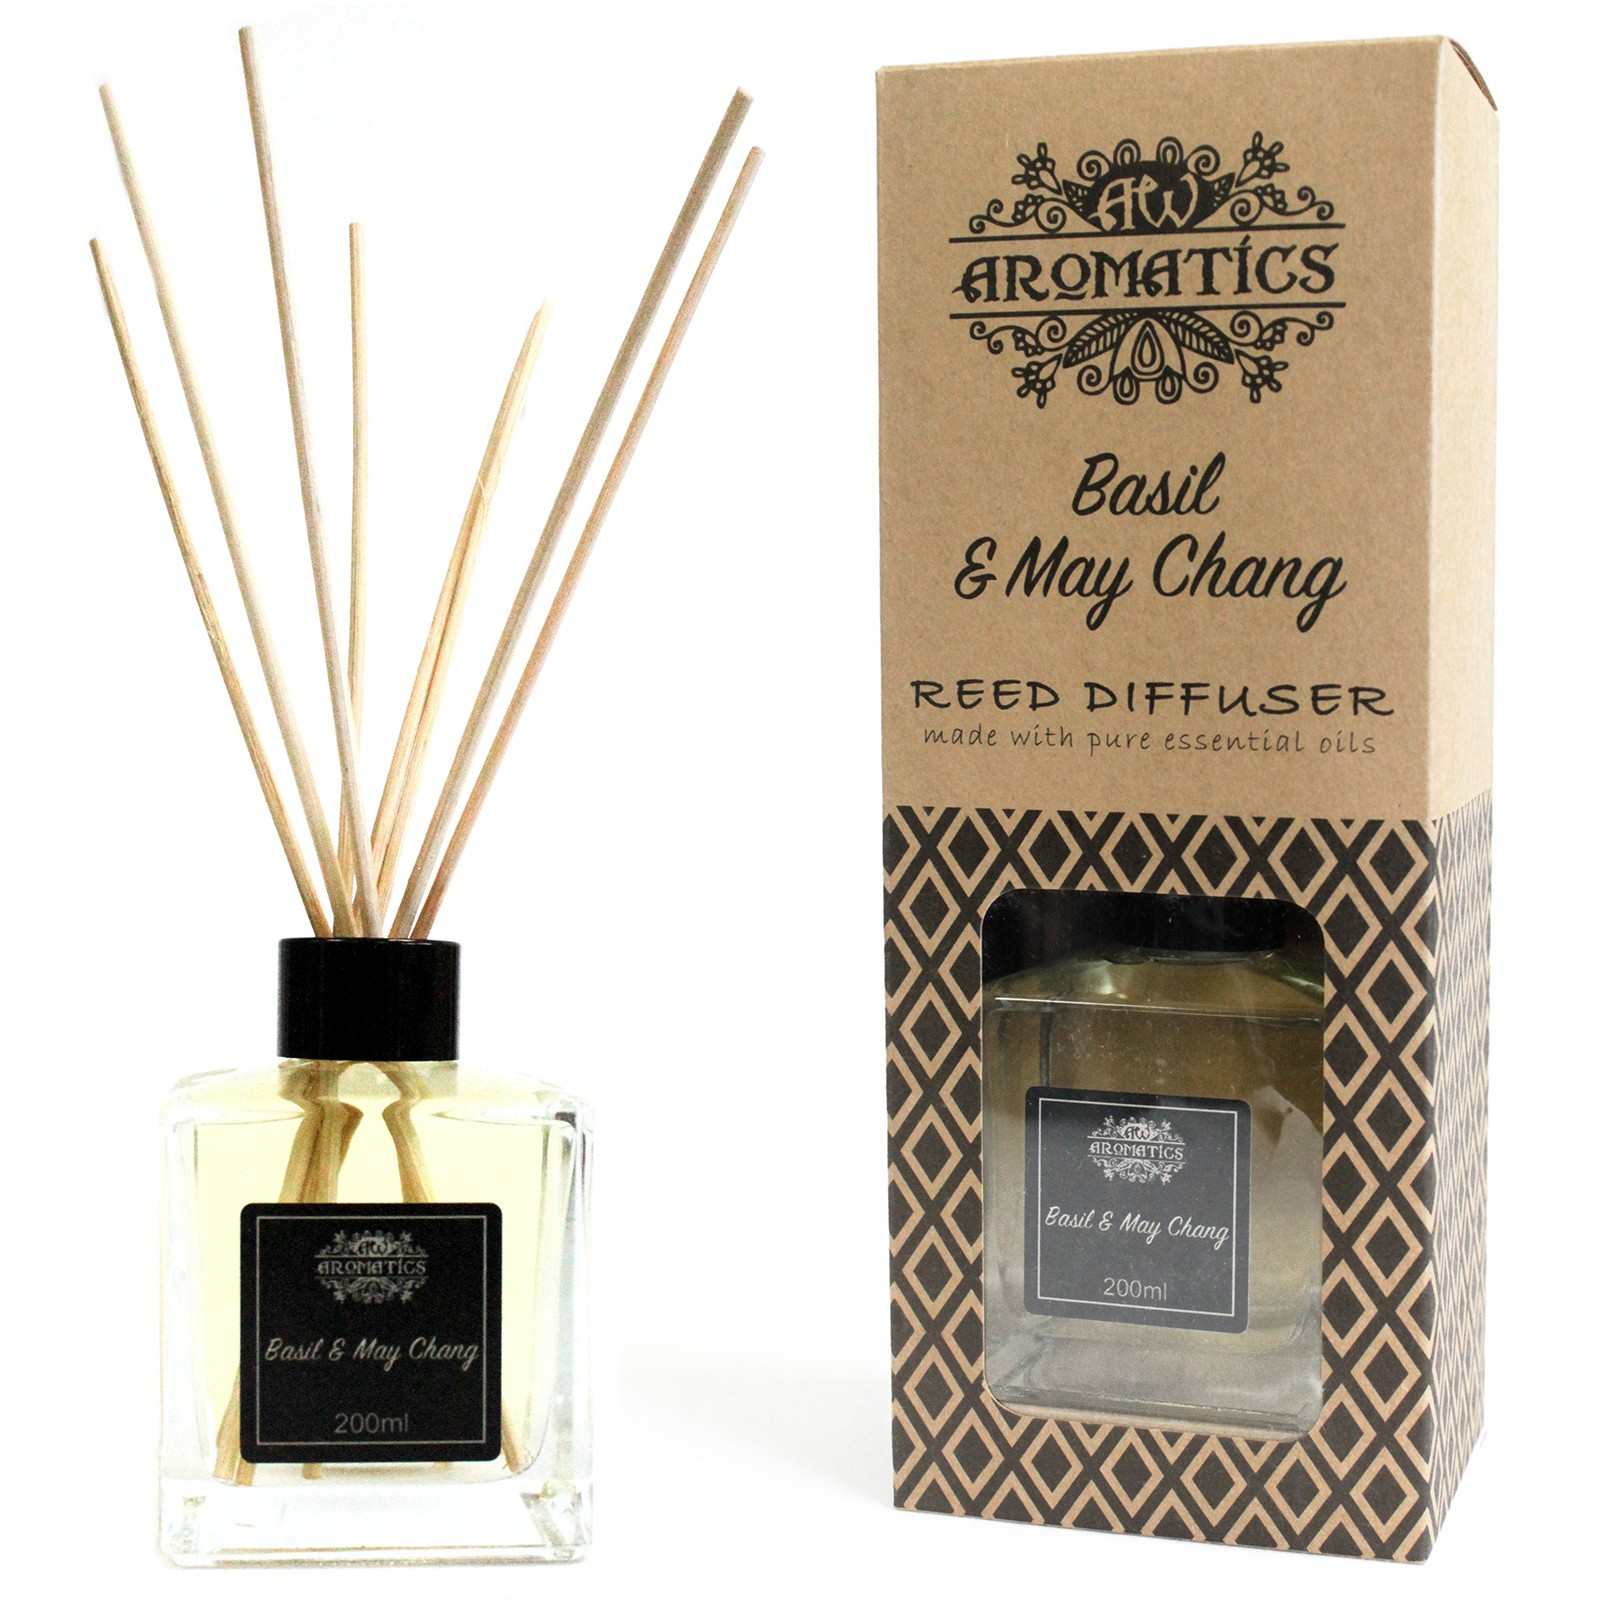 200ml Basil and Maychang Essential Oil Reed Diffuser